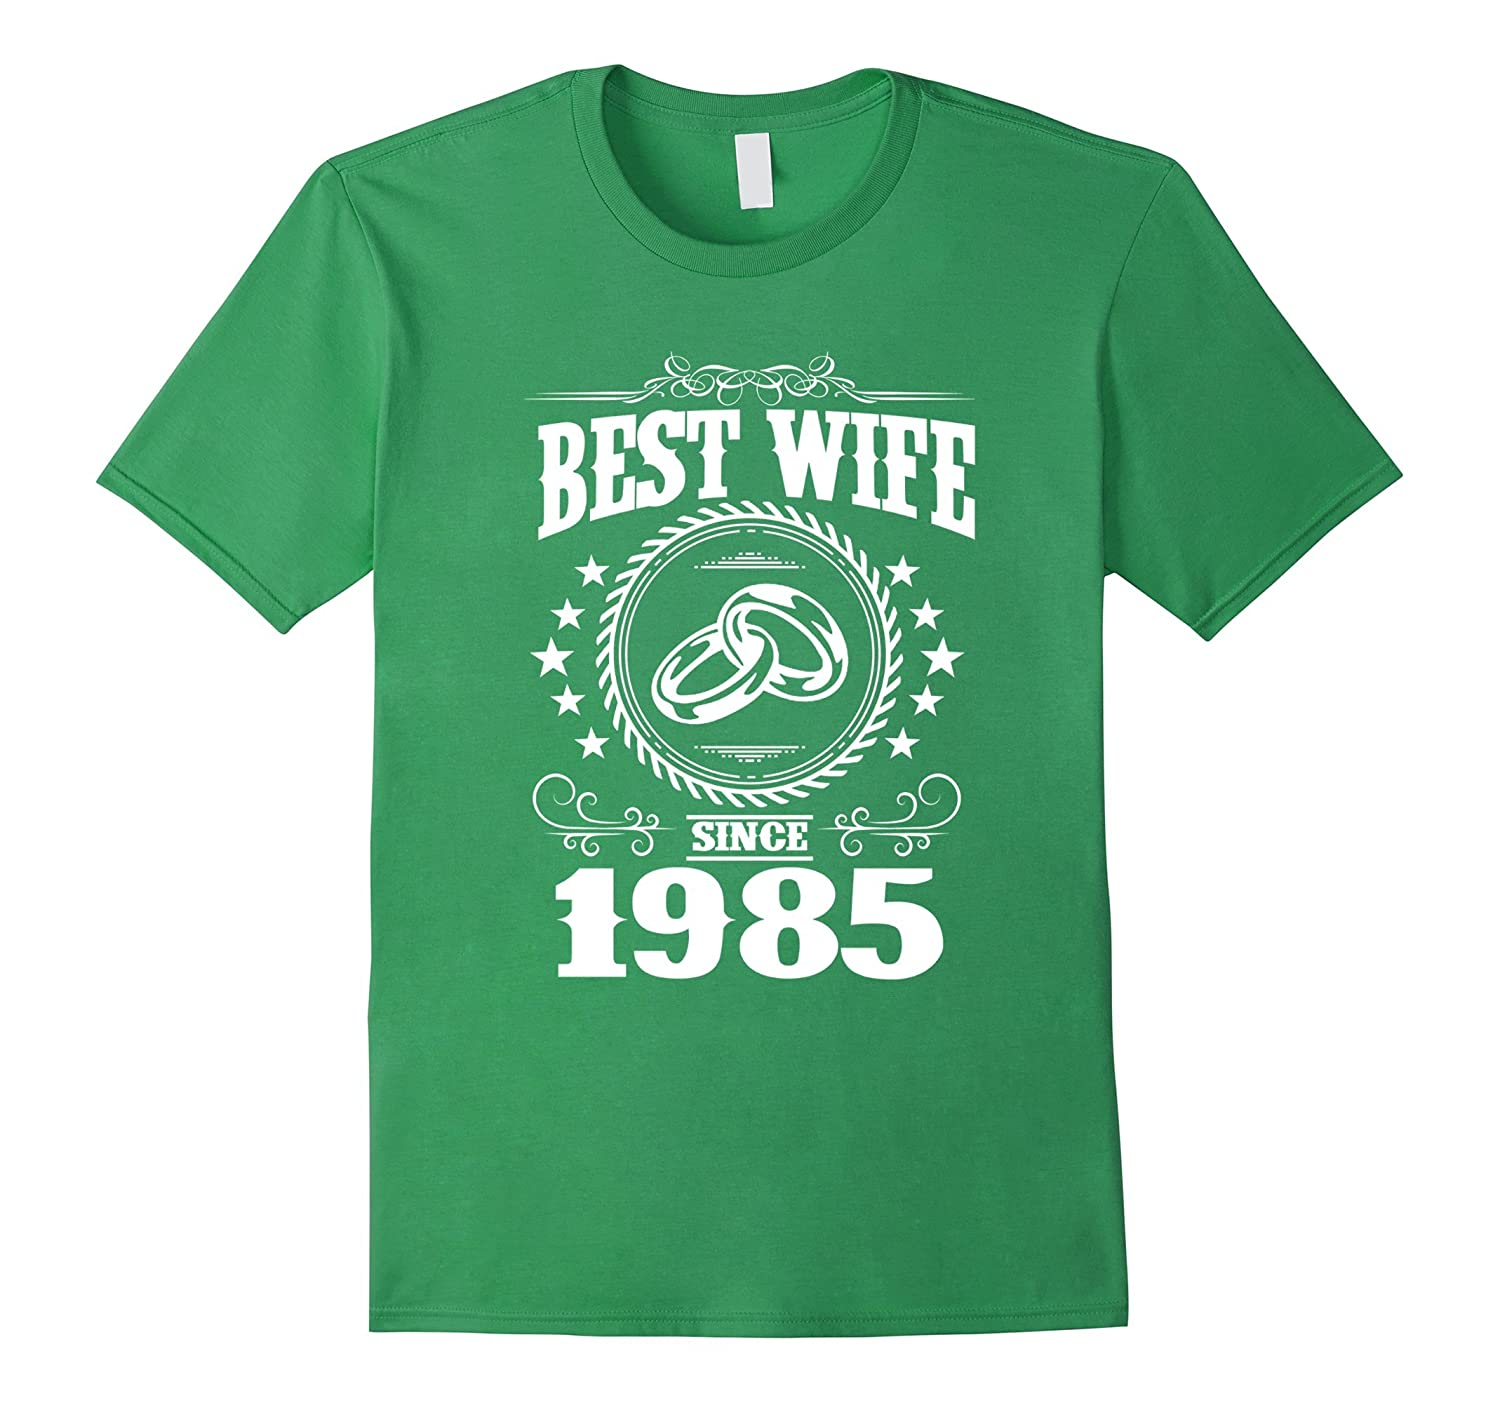 32 Wedding Anniversary Gifts: 32nd Wedding Anniversary T-Shirts For Wife From Husband-PL